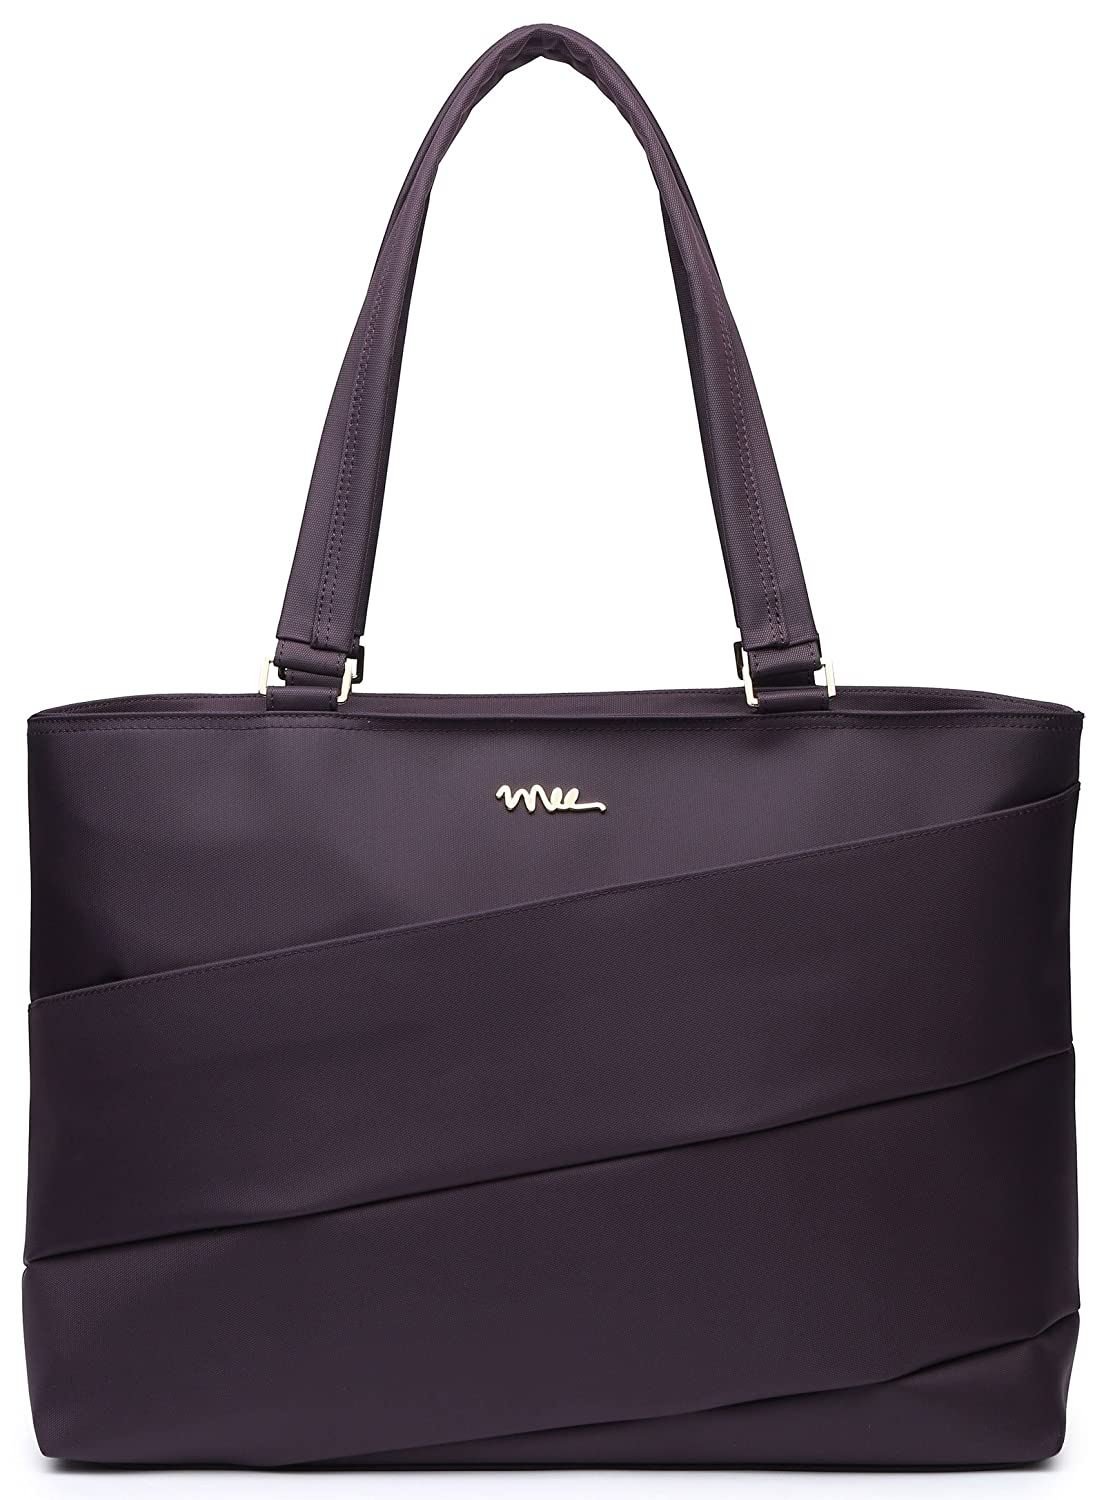 NNEE 15 15.6 Inch Water Resistance Nylon Laptop Tote Bag Notebook Computer Work Handbag Travel Carrying Bag Purple